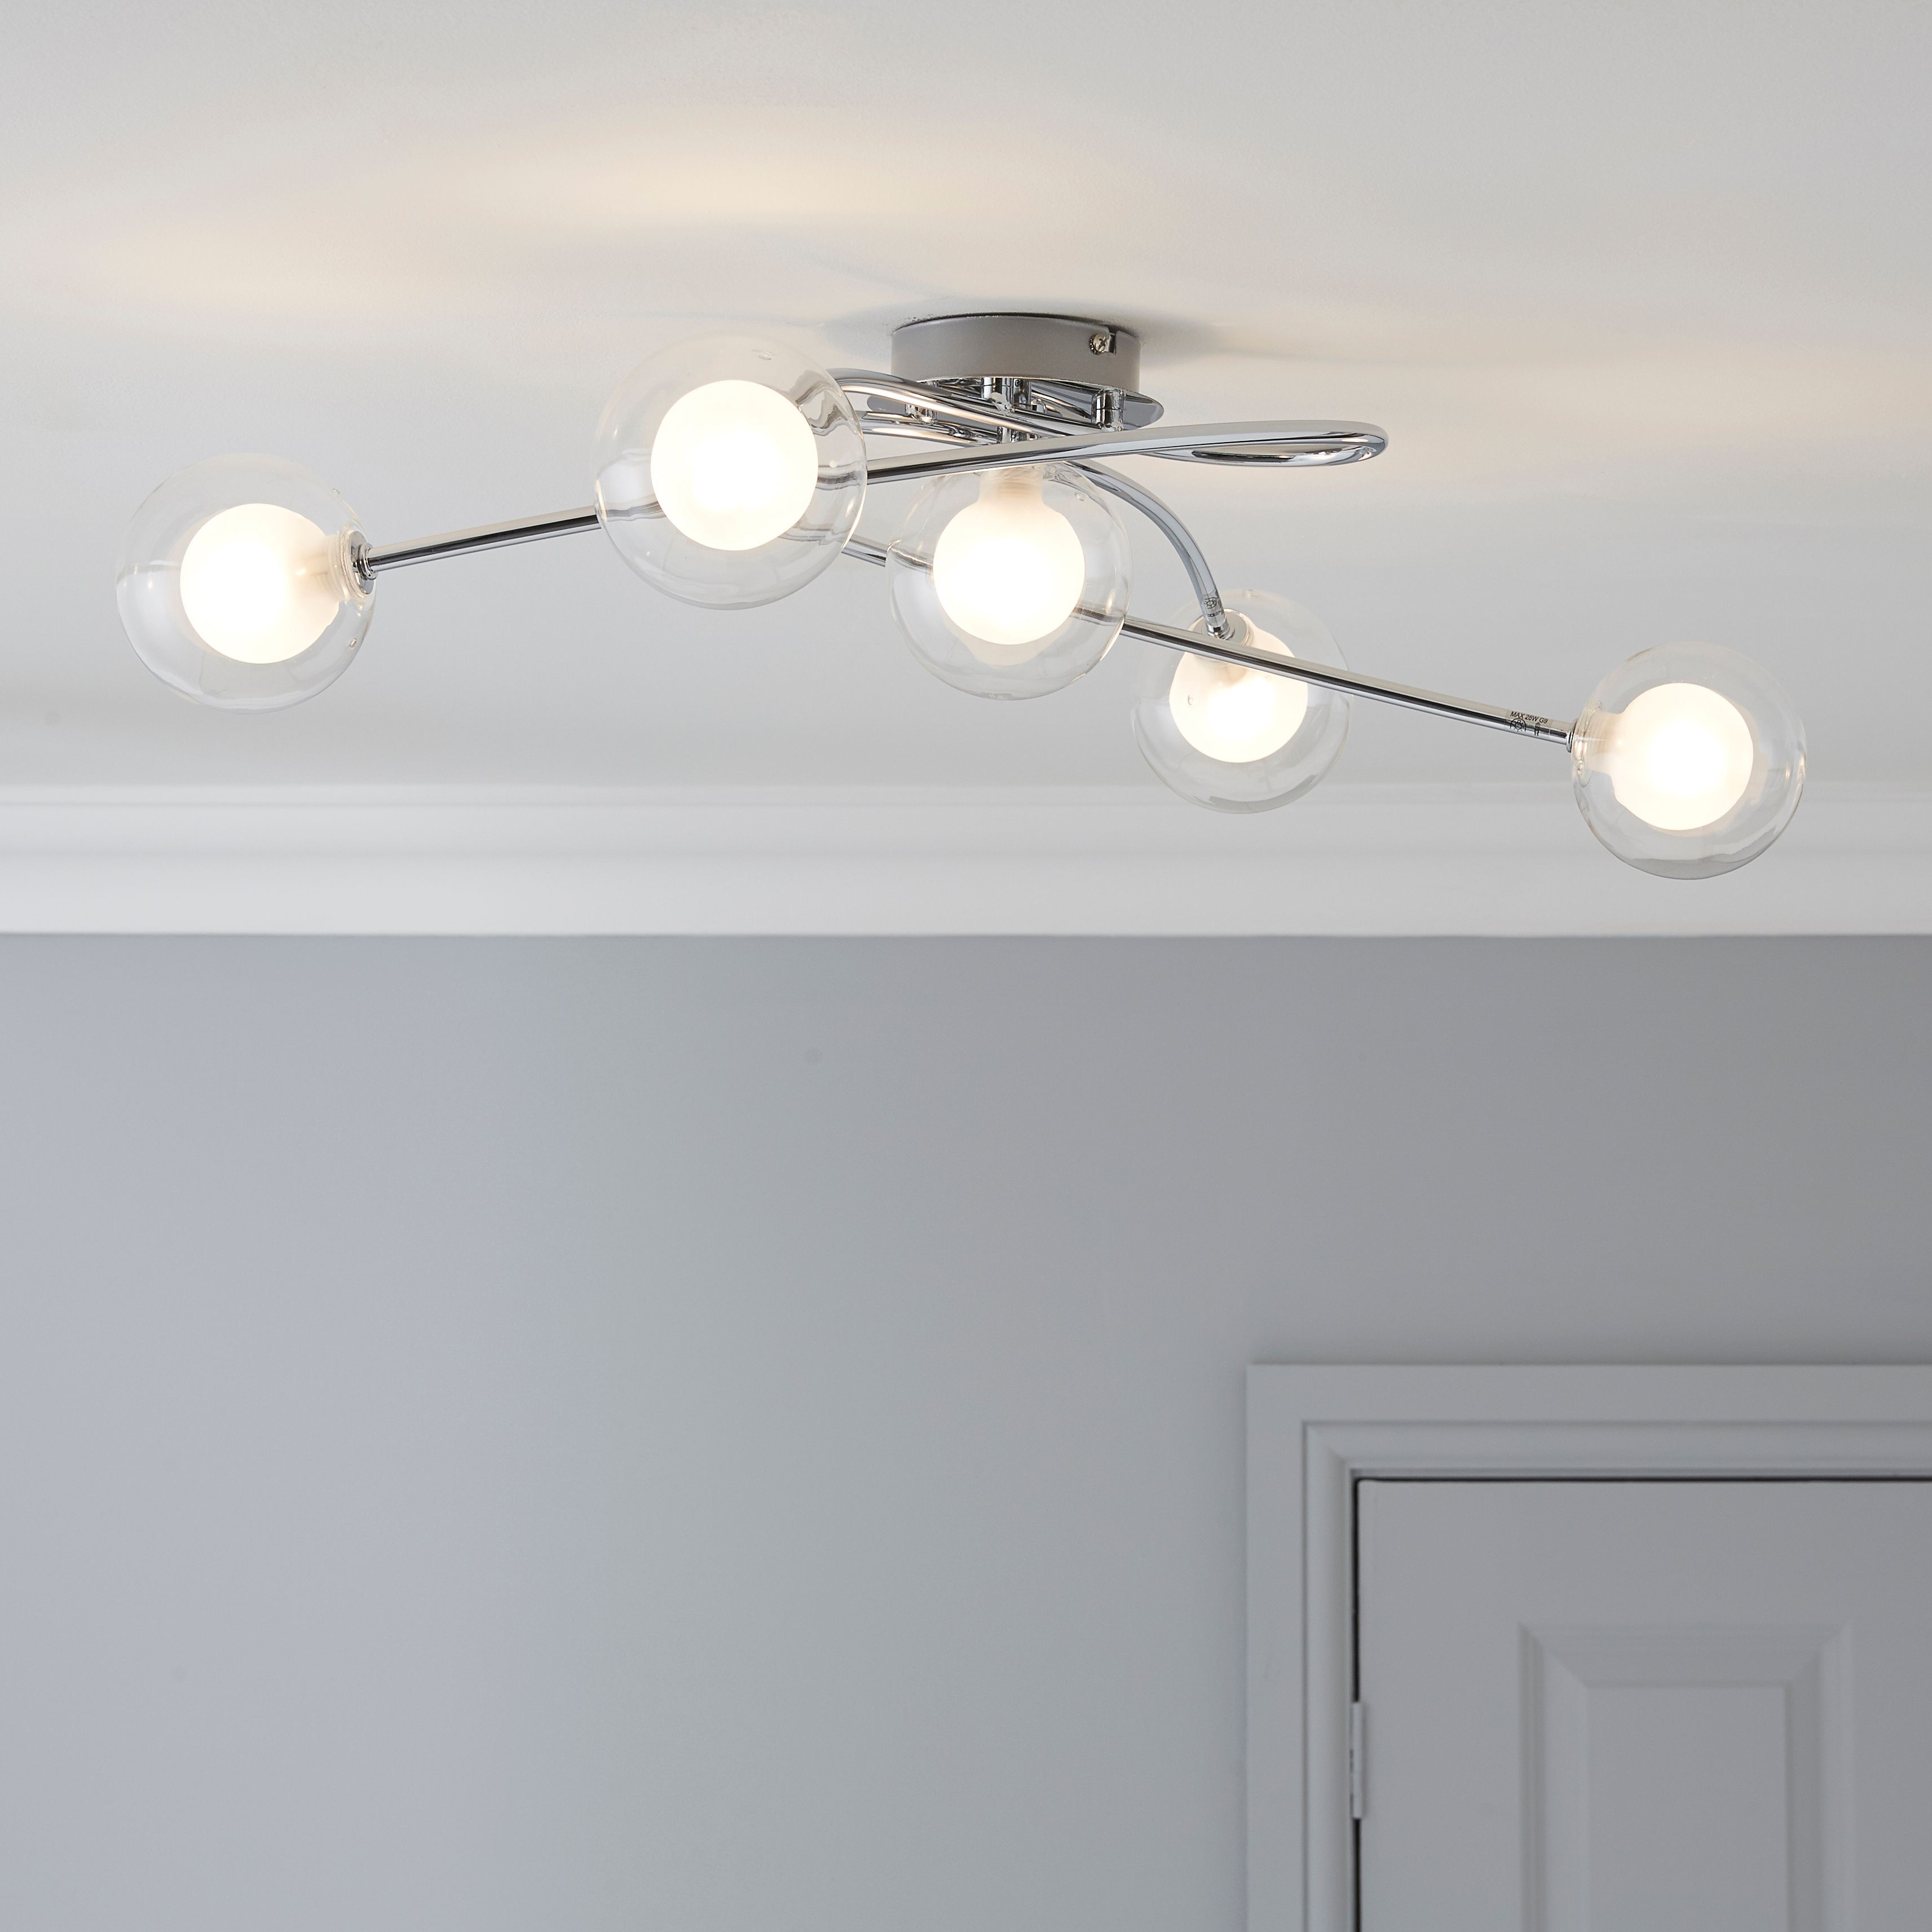 Bistra Double Glass Chrome Effect  Lamp Ceiling Light Bq For All Your Home And Garden Supplies And Advice On All The Latest Diy Trends